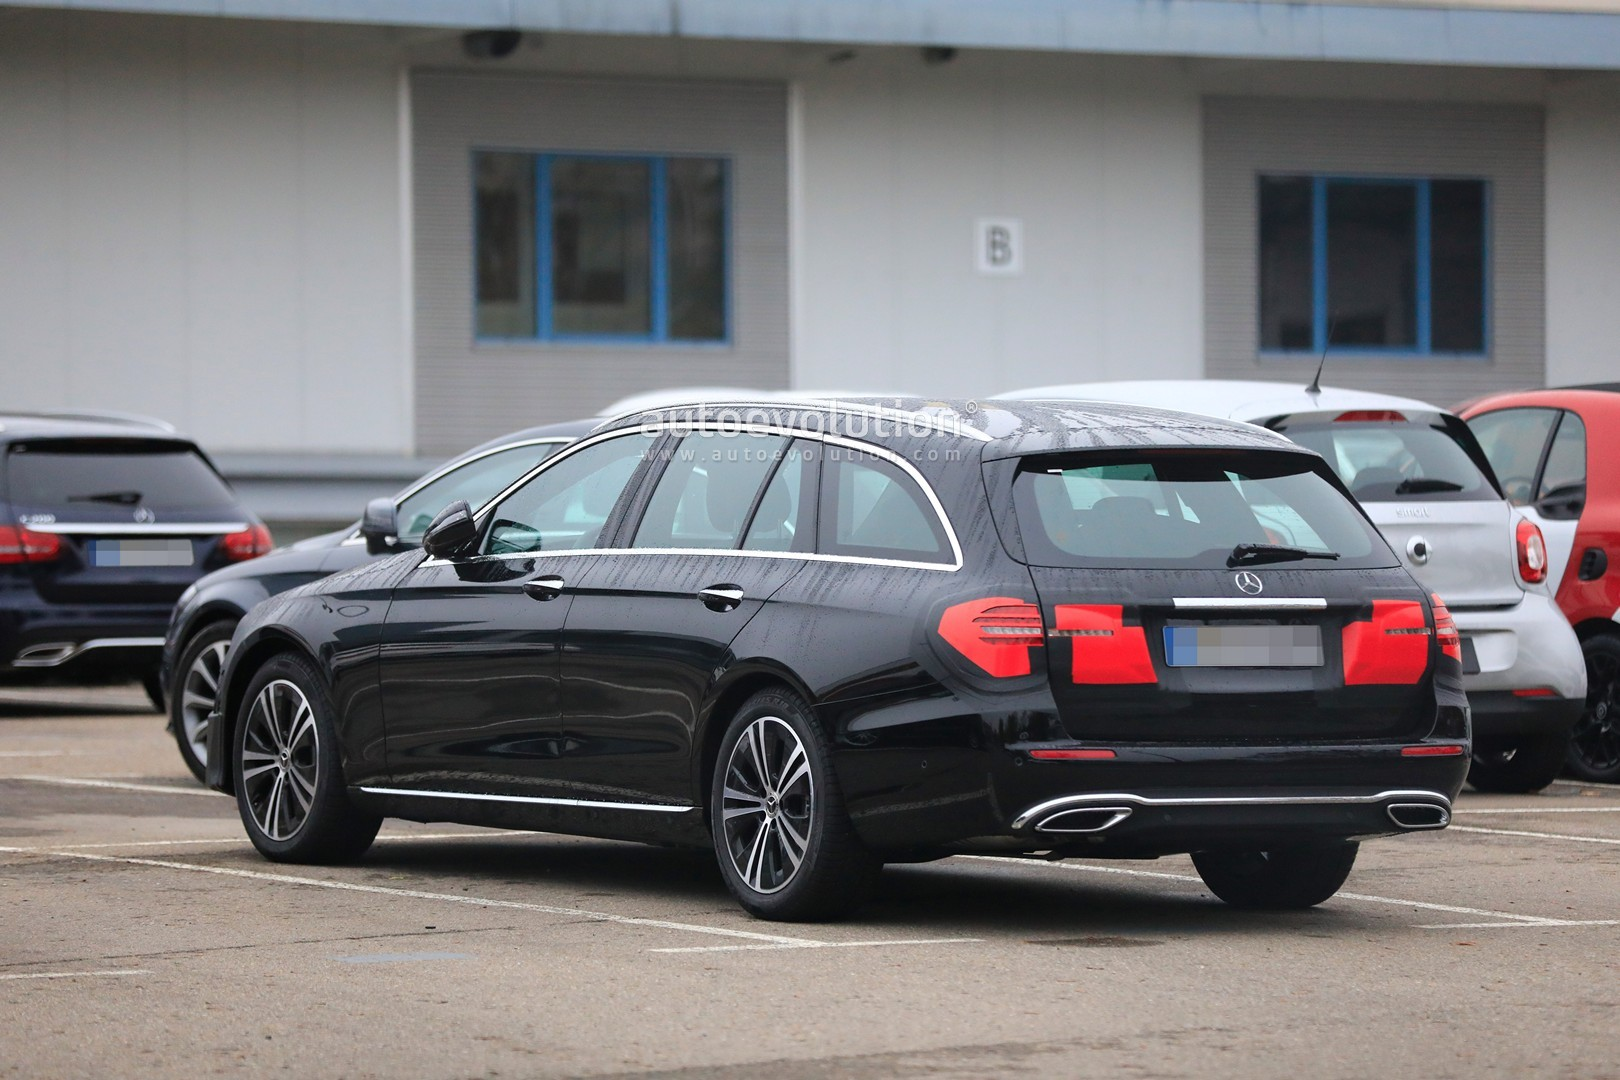 2020 - [Mercedes-Benz] Classe E restylée  2020-mercedes-e-class-spied-is-getting-a-new-face-inspided-by-cls-class_4